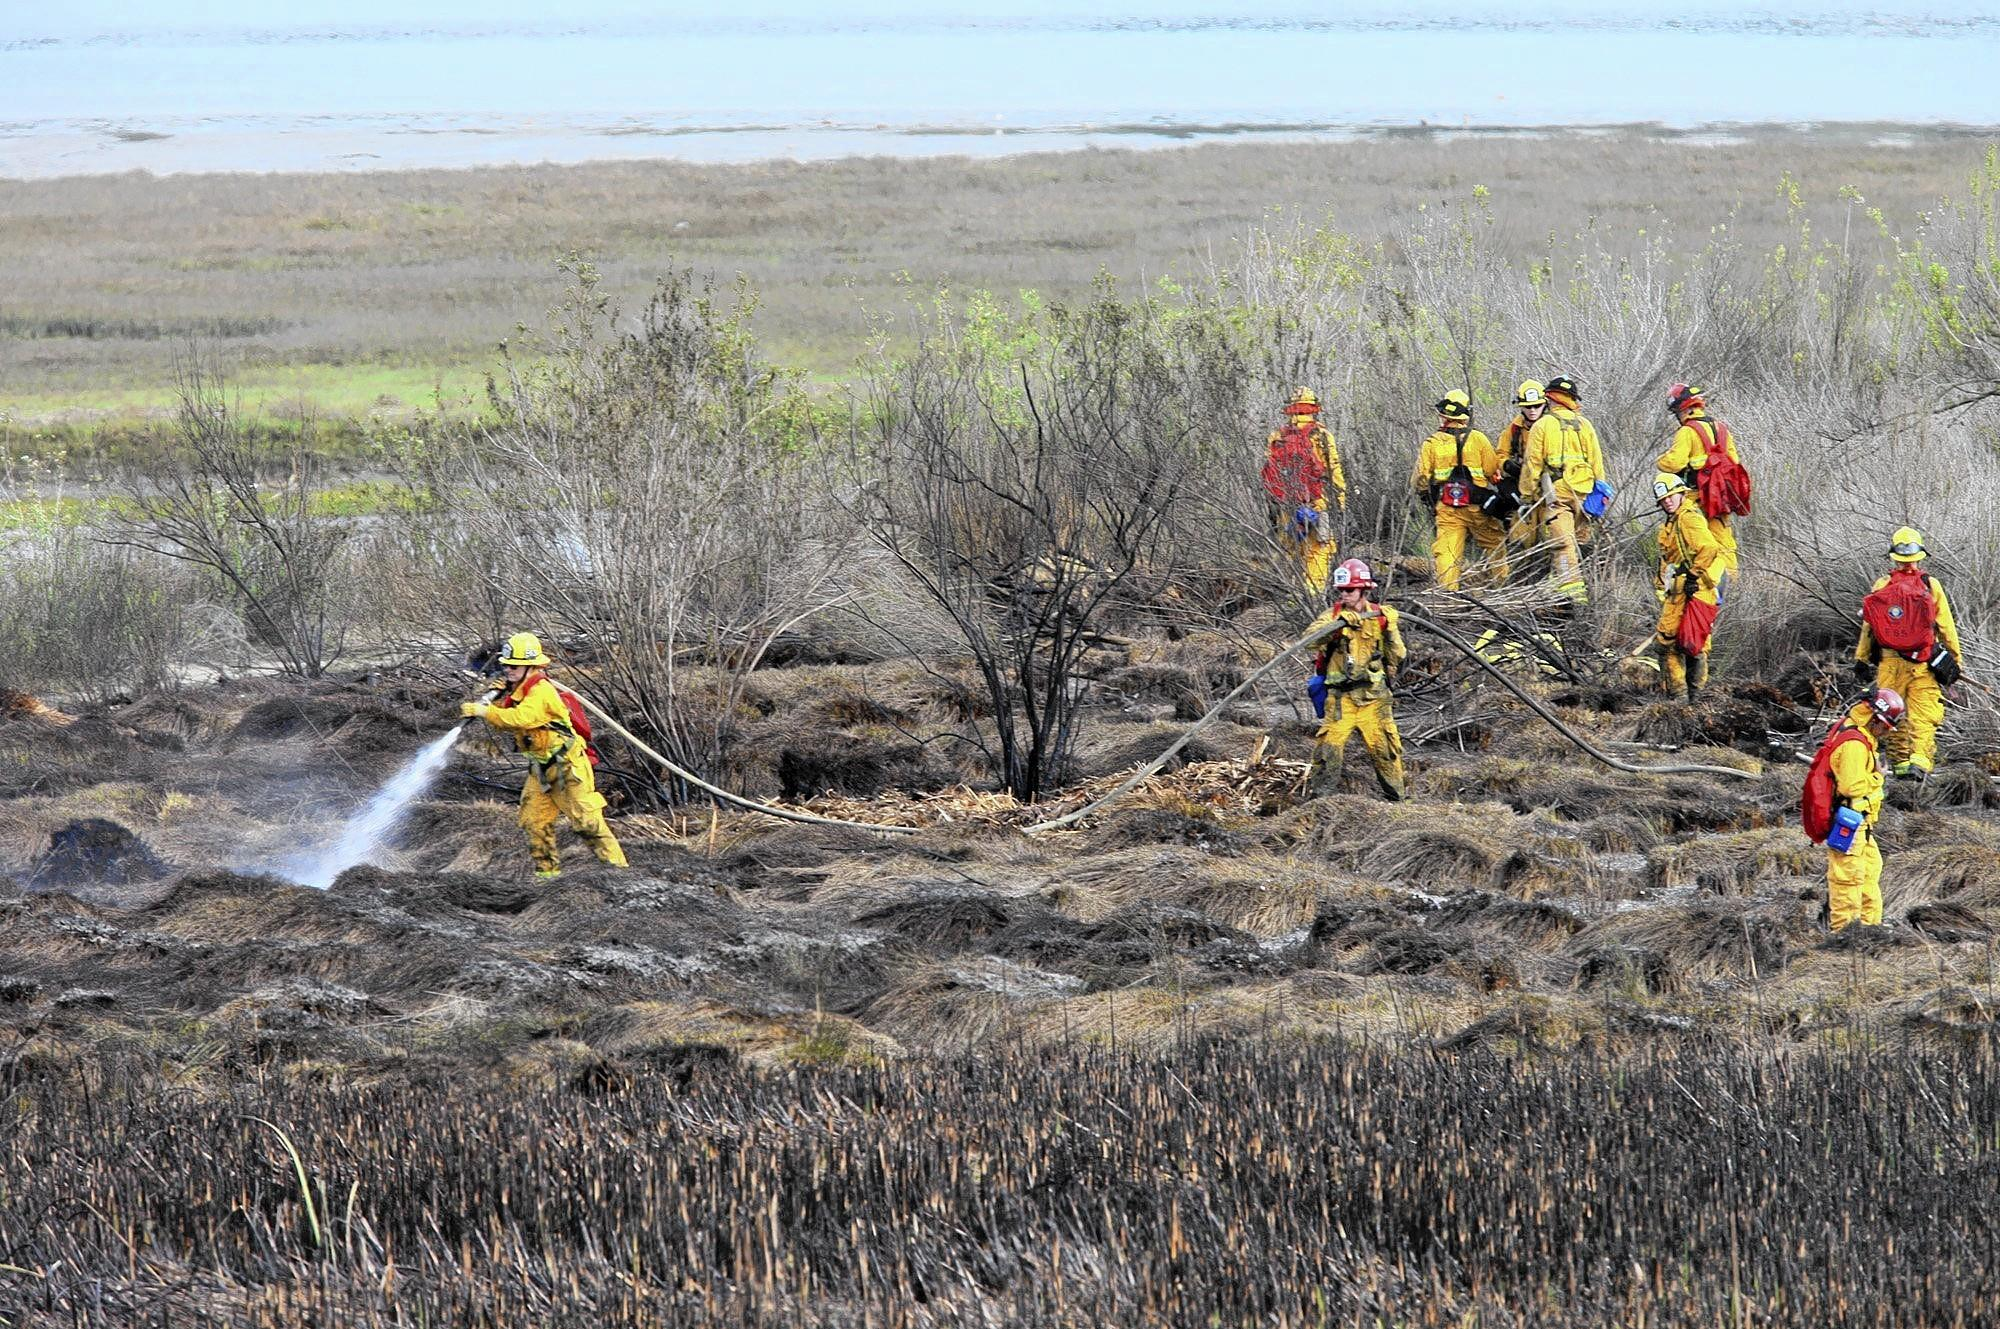 Firefighters work on extinguishing a vegetation fire that burned in the Upper Newport Bay Nature Preserve along Irvine Avenue, just north of Santiago Drive, in Newport Beach on Friday afternoon.